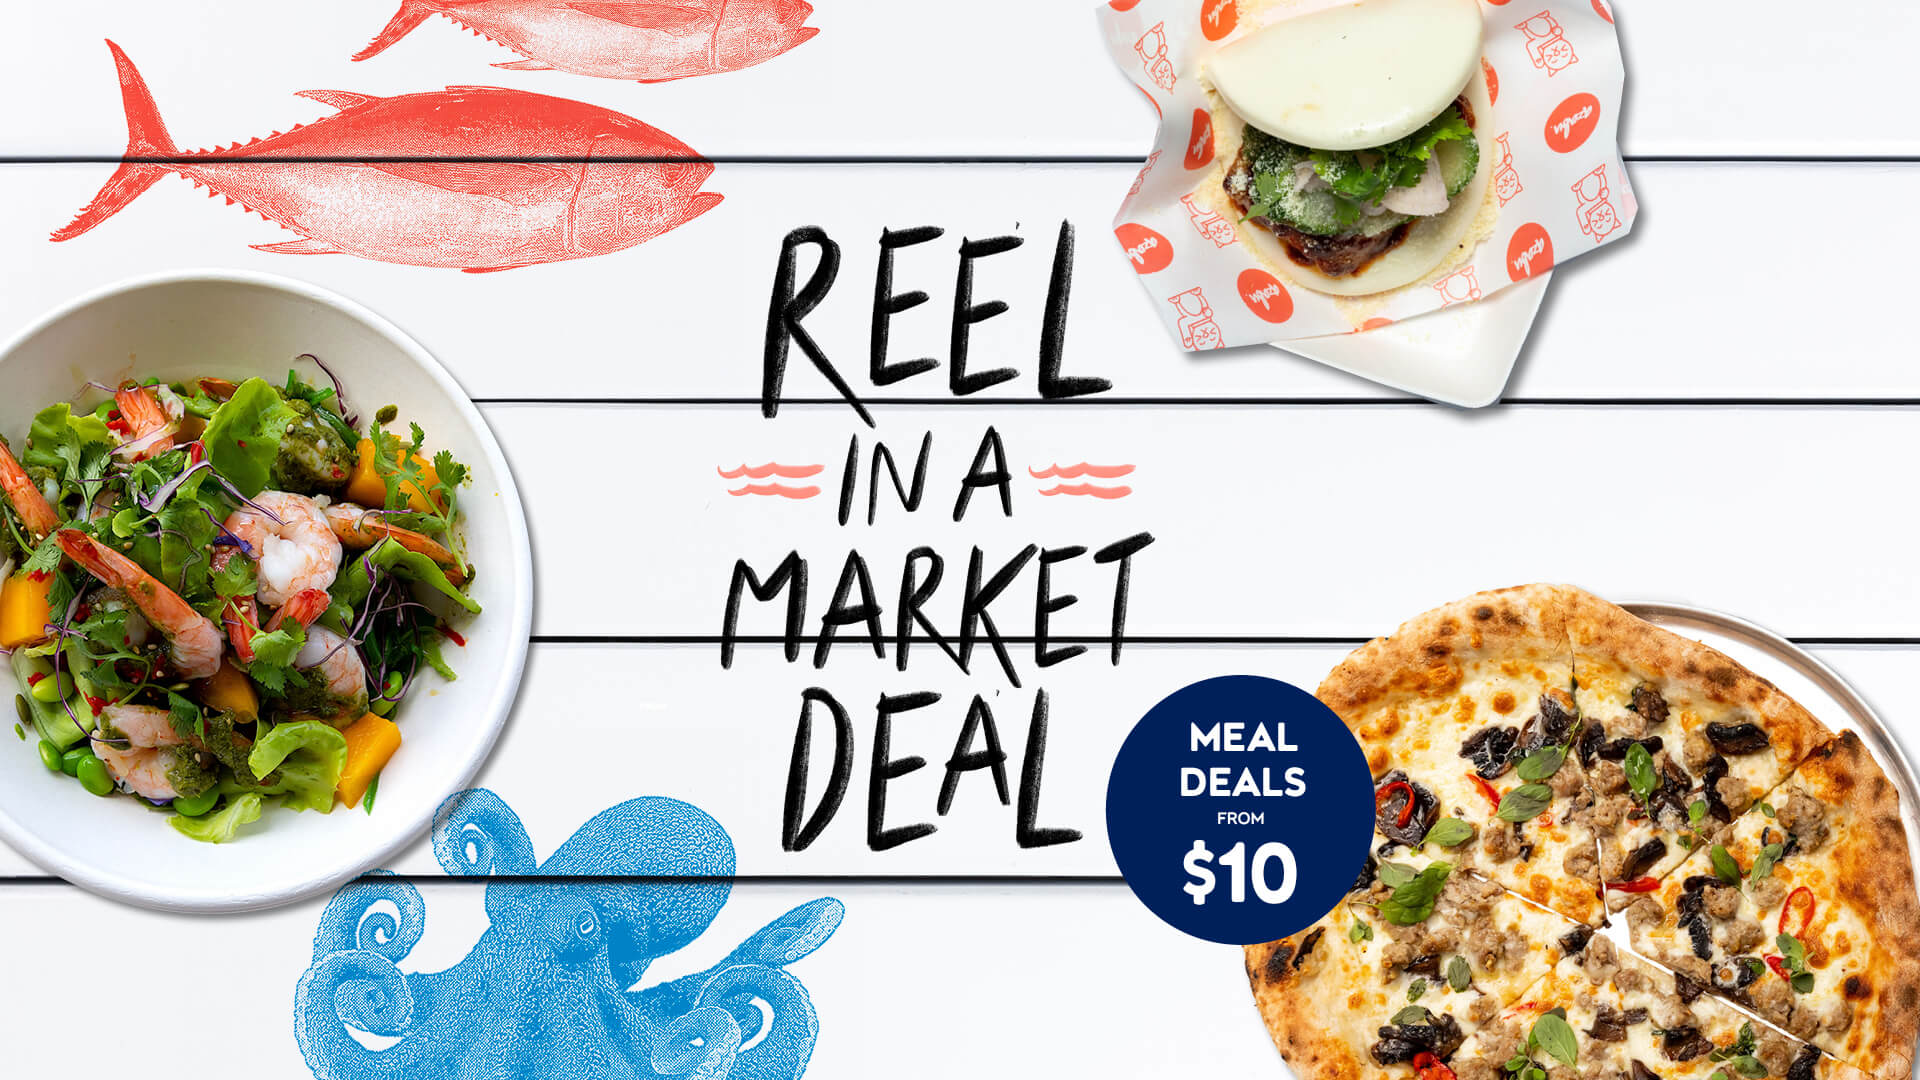 Reel in a market deal. Meal deals from $10